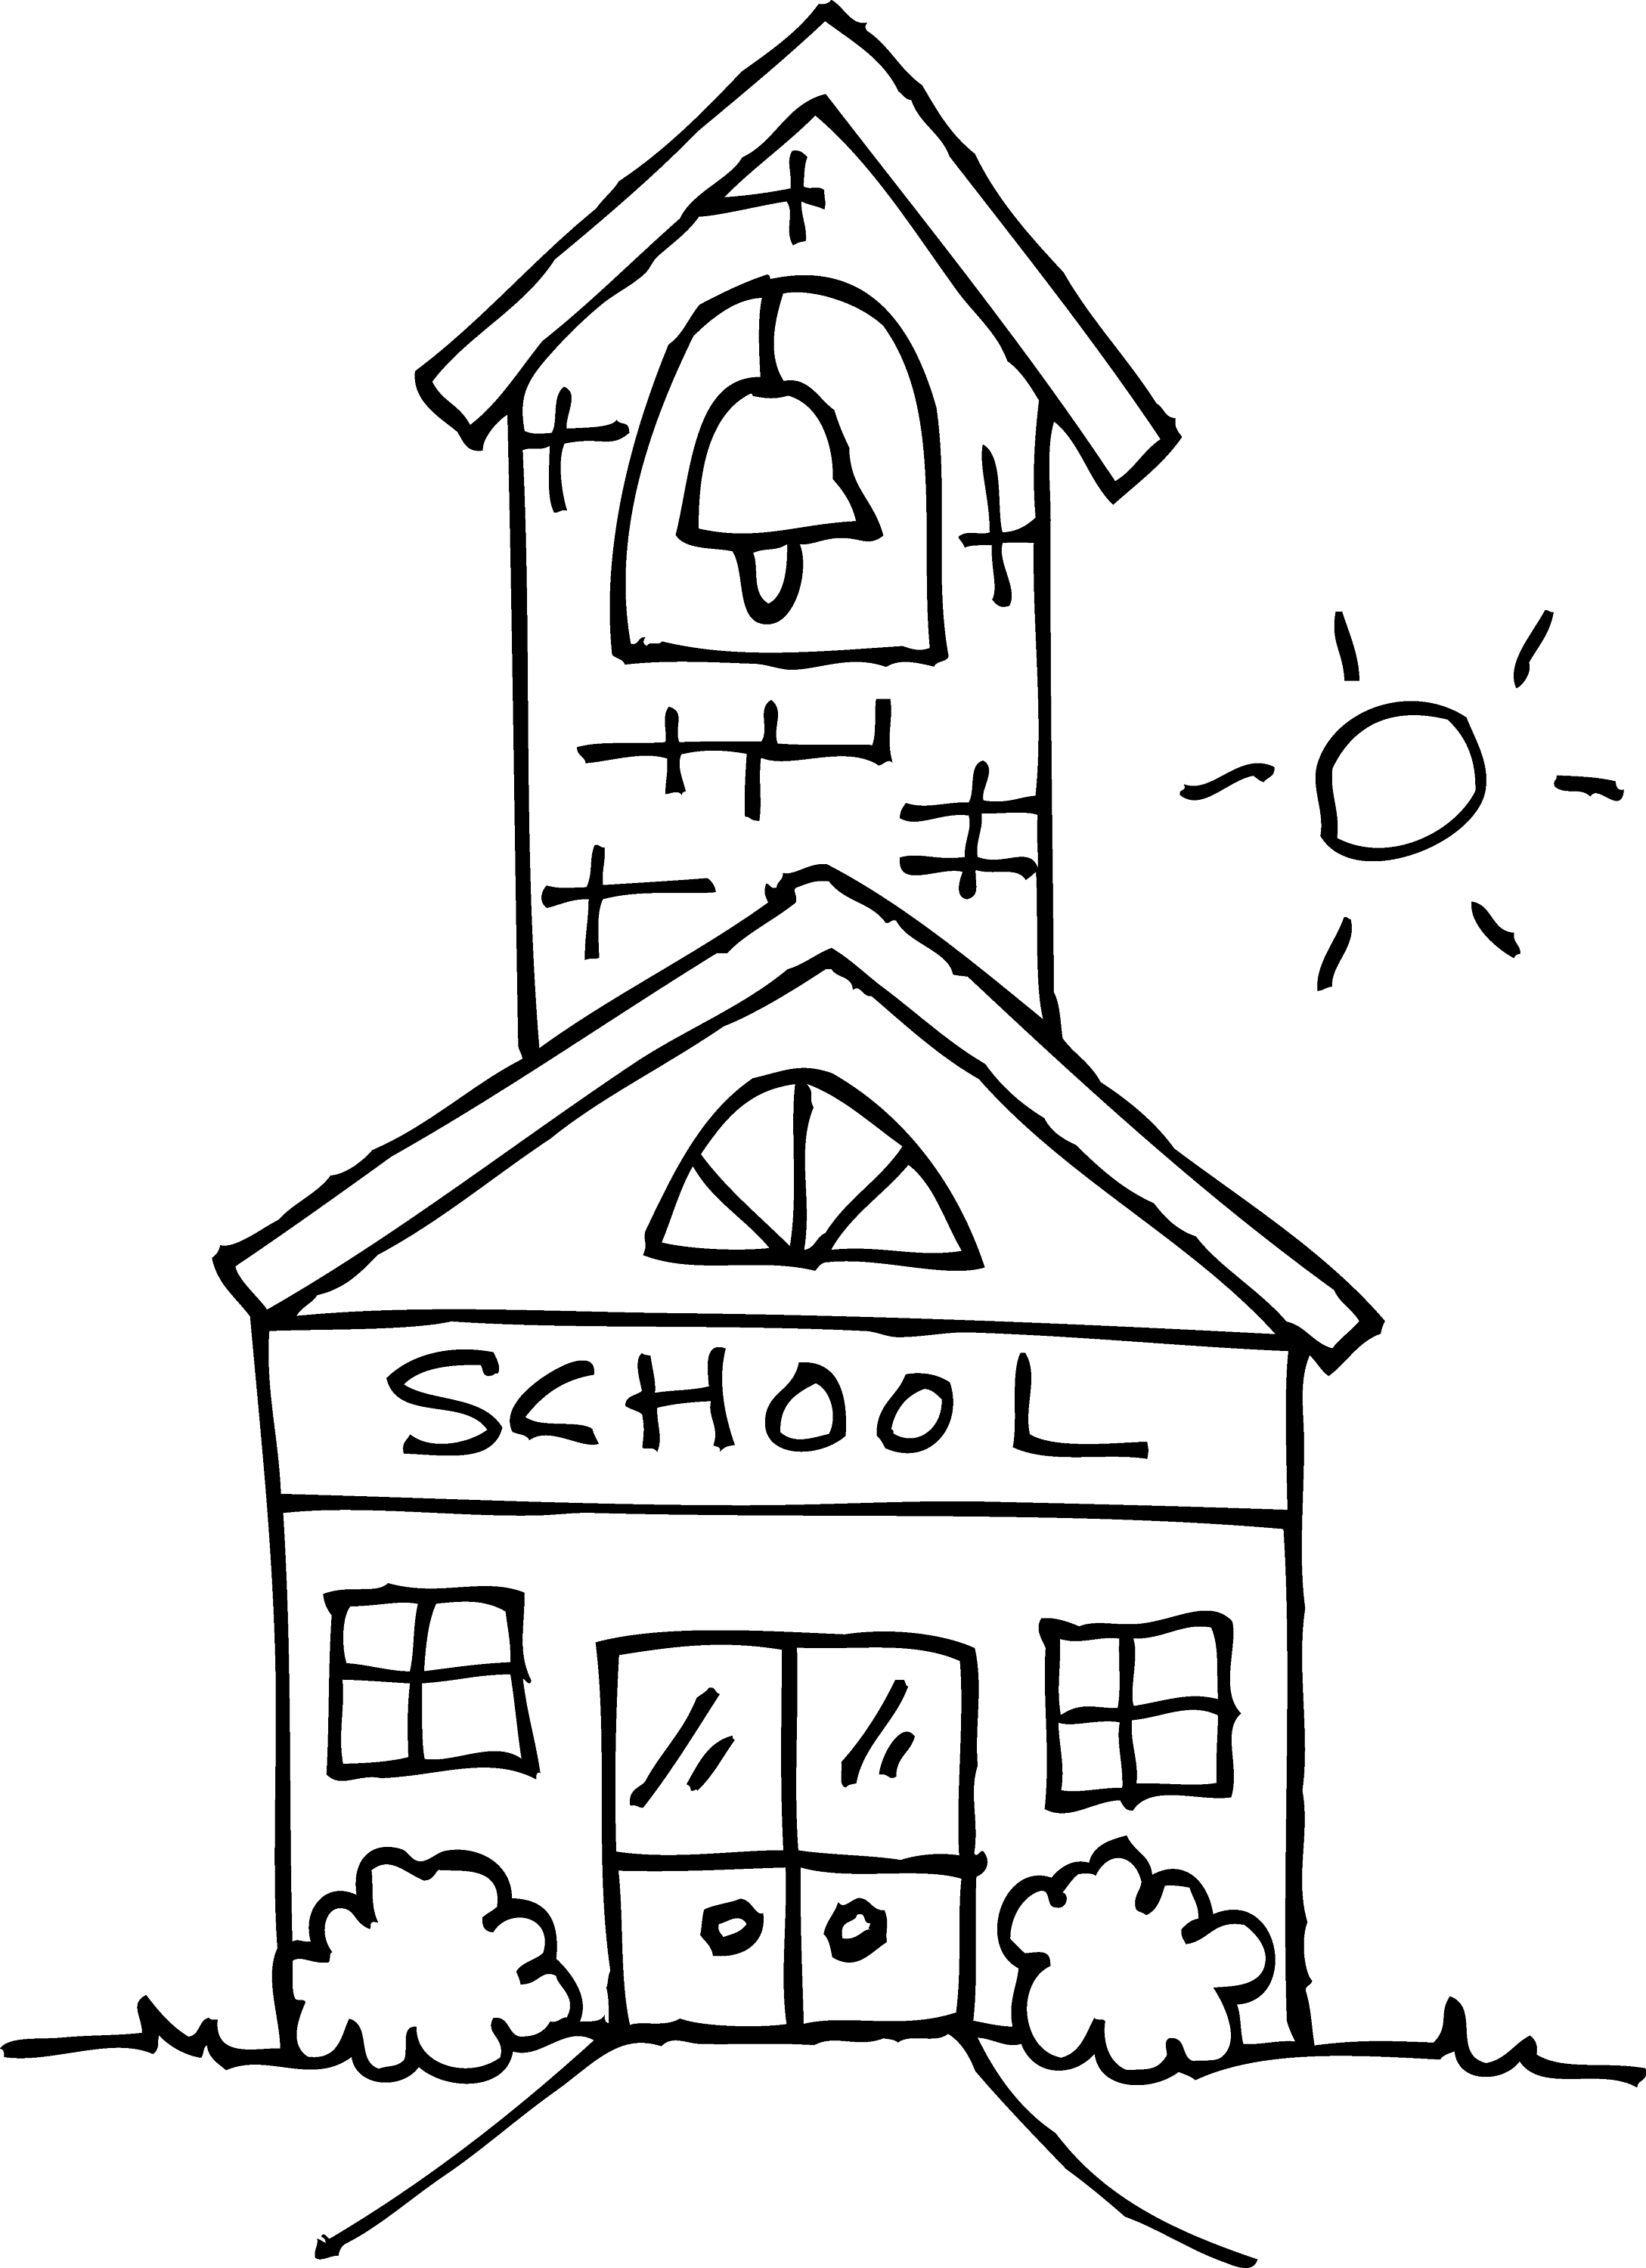 Cute Schoolhouse Coloring Page Free Clip Art Coloring Pages For Elementary School